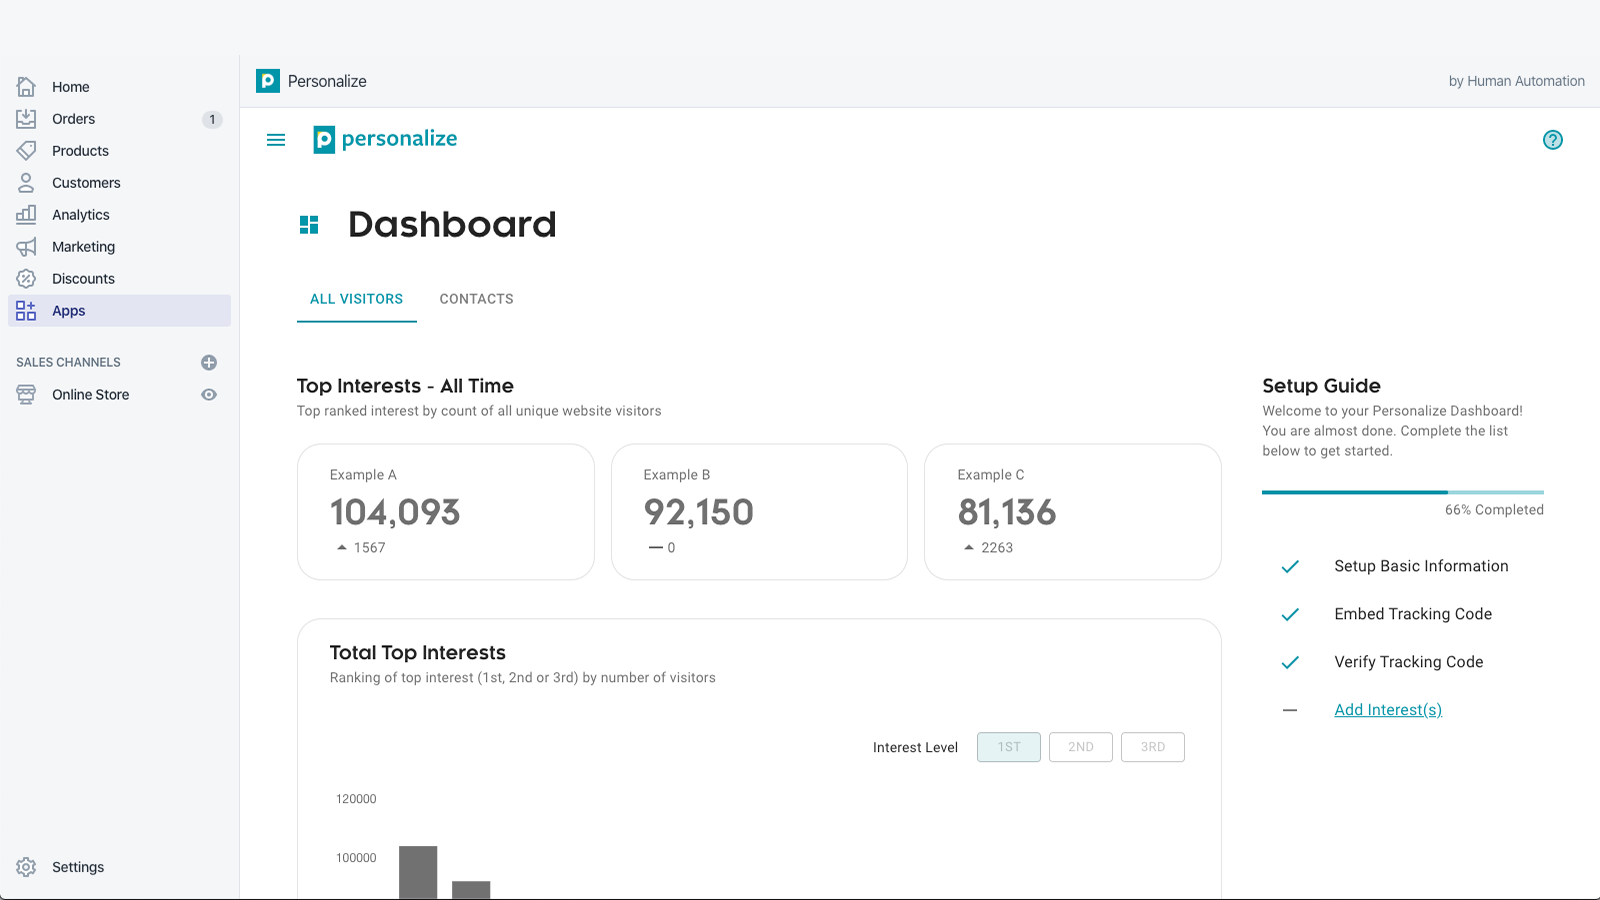 dashboard showing interest of all time